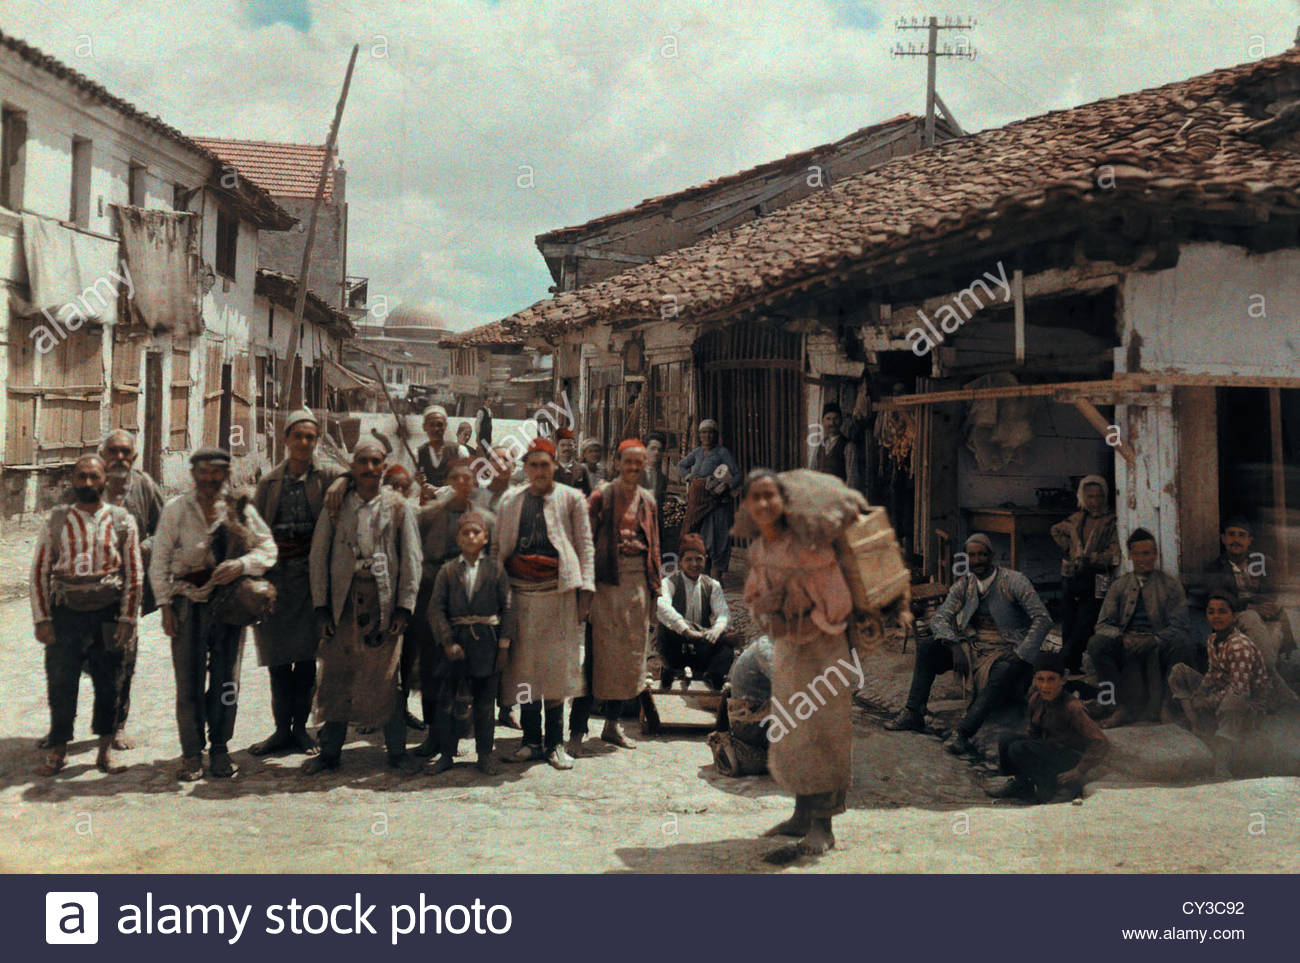 Villagers photographed in the streets of Skopje. - Stock Image